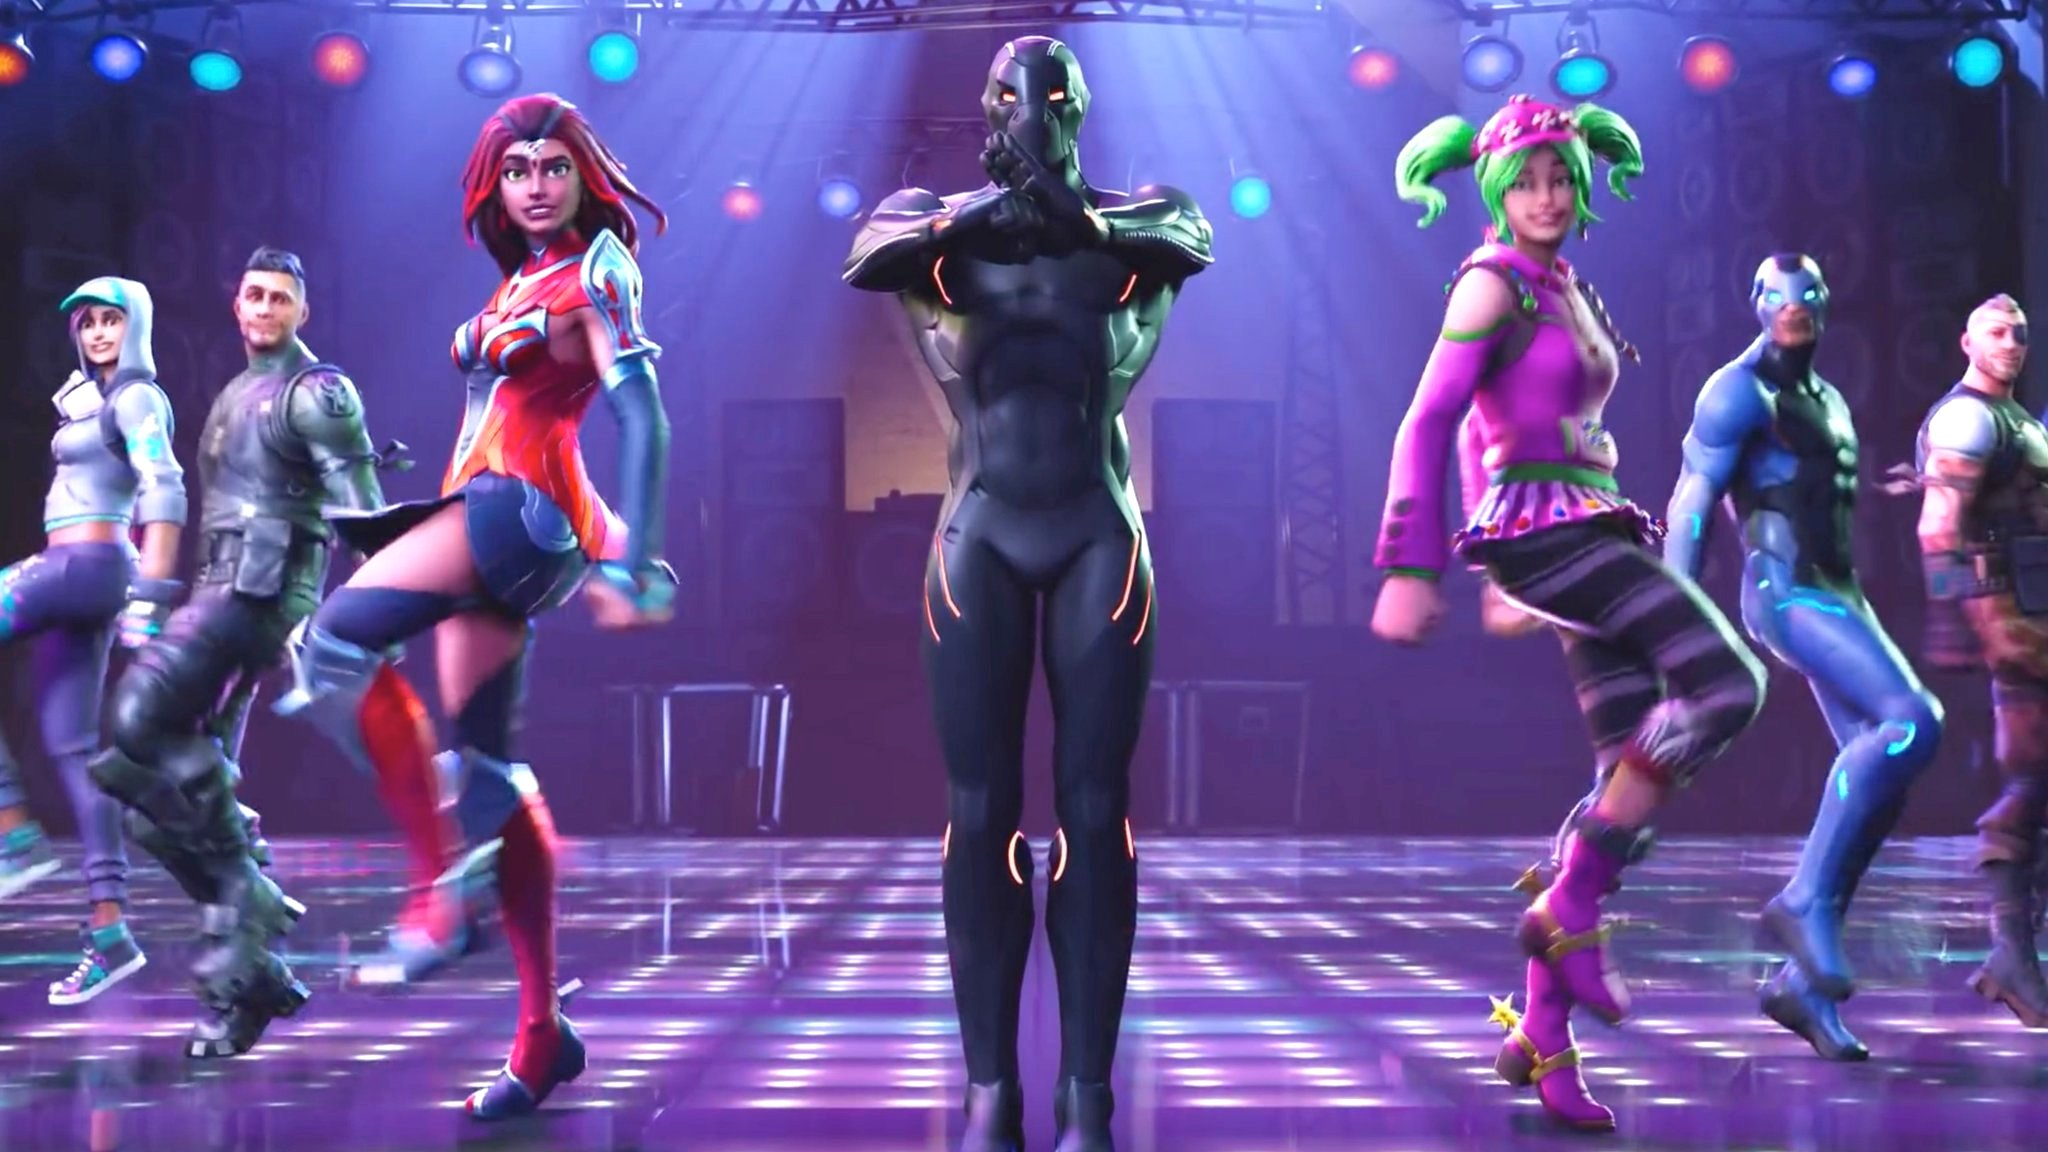 Sony faces growing Fortnite backlash at E3